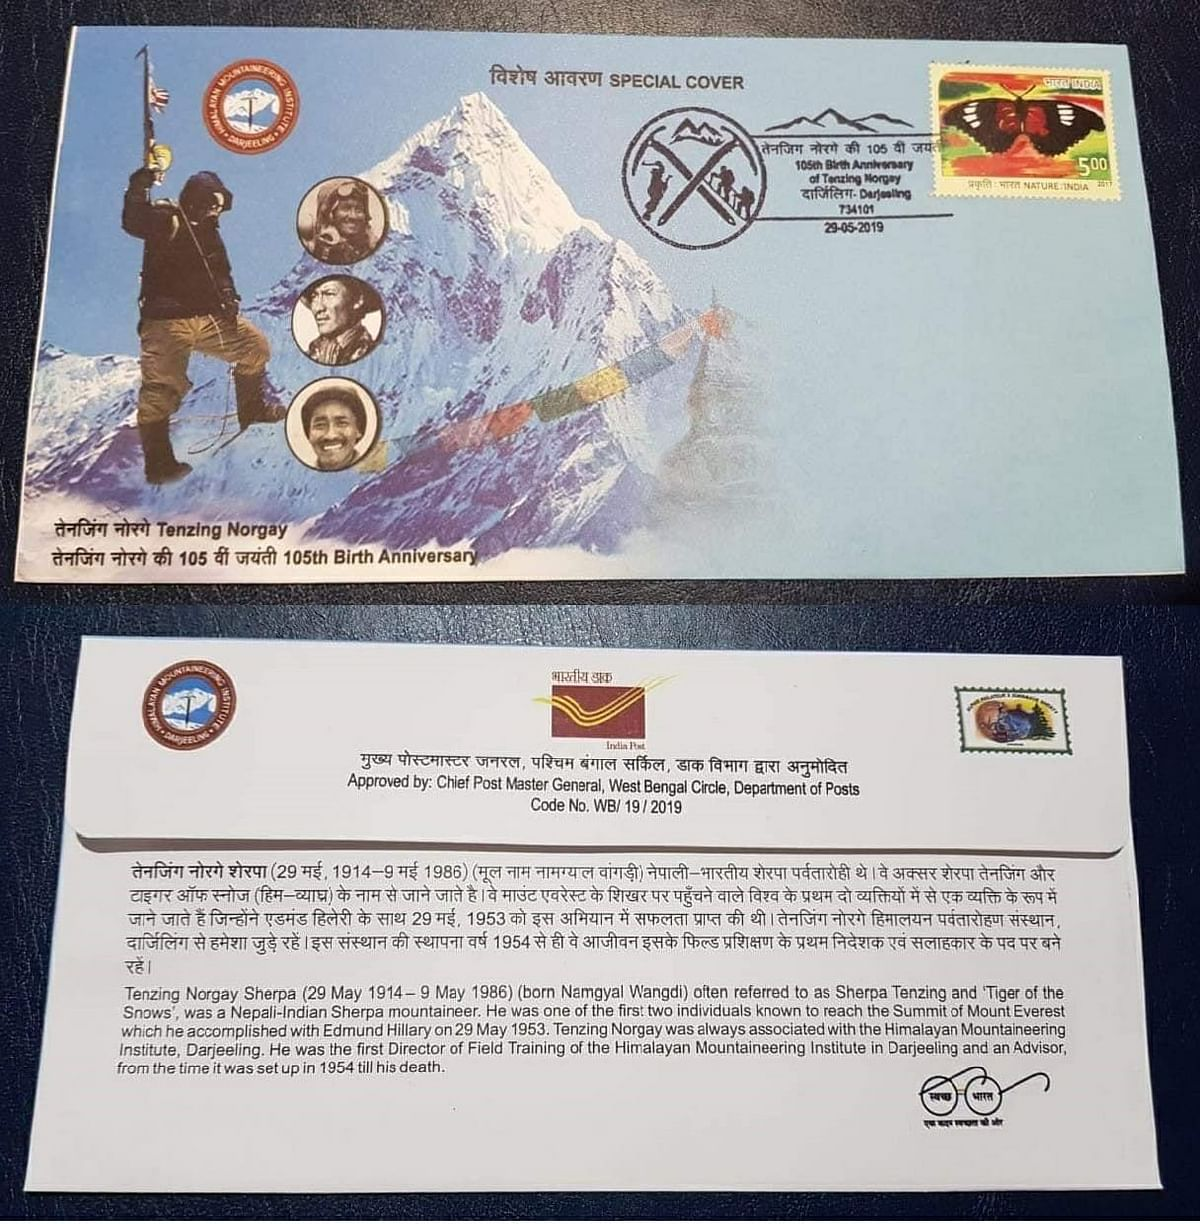 A first day cover of Tenzing Norgay with a special cancellation was launched to mark the day by the Indian Postal Department and the Alpine Philatelic and Numismatic Society, Darjeeling